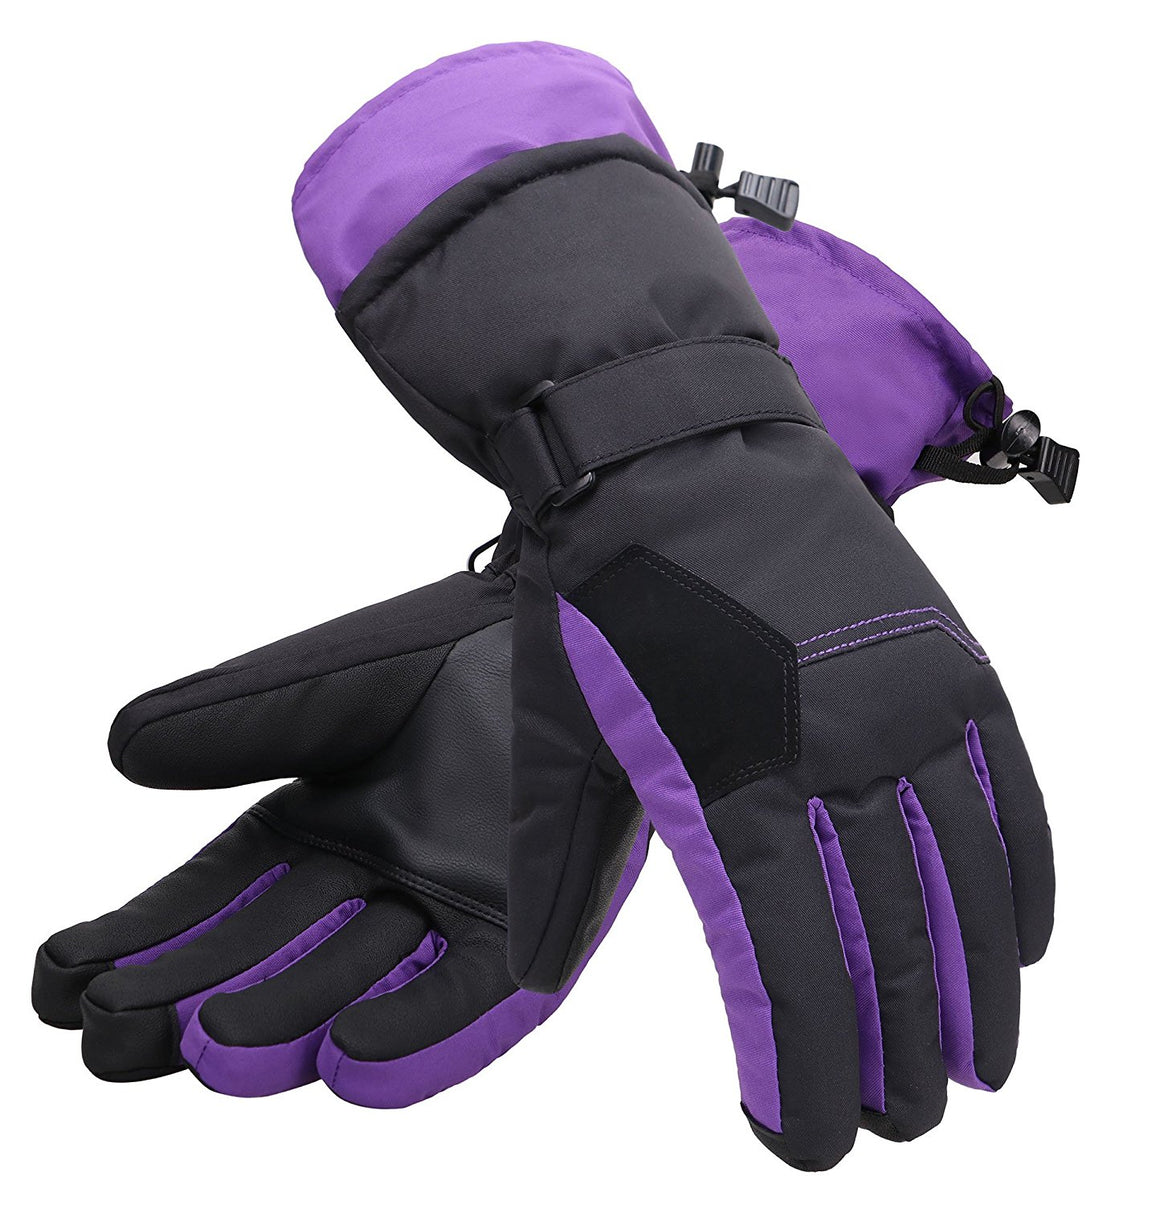 Andorra Women's Two-Tone Geometric Touchscreen Ski Glove - Lavender